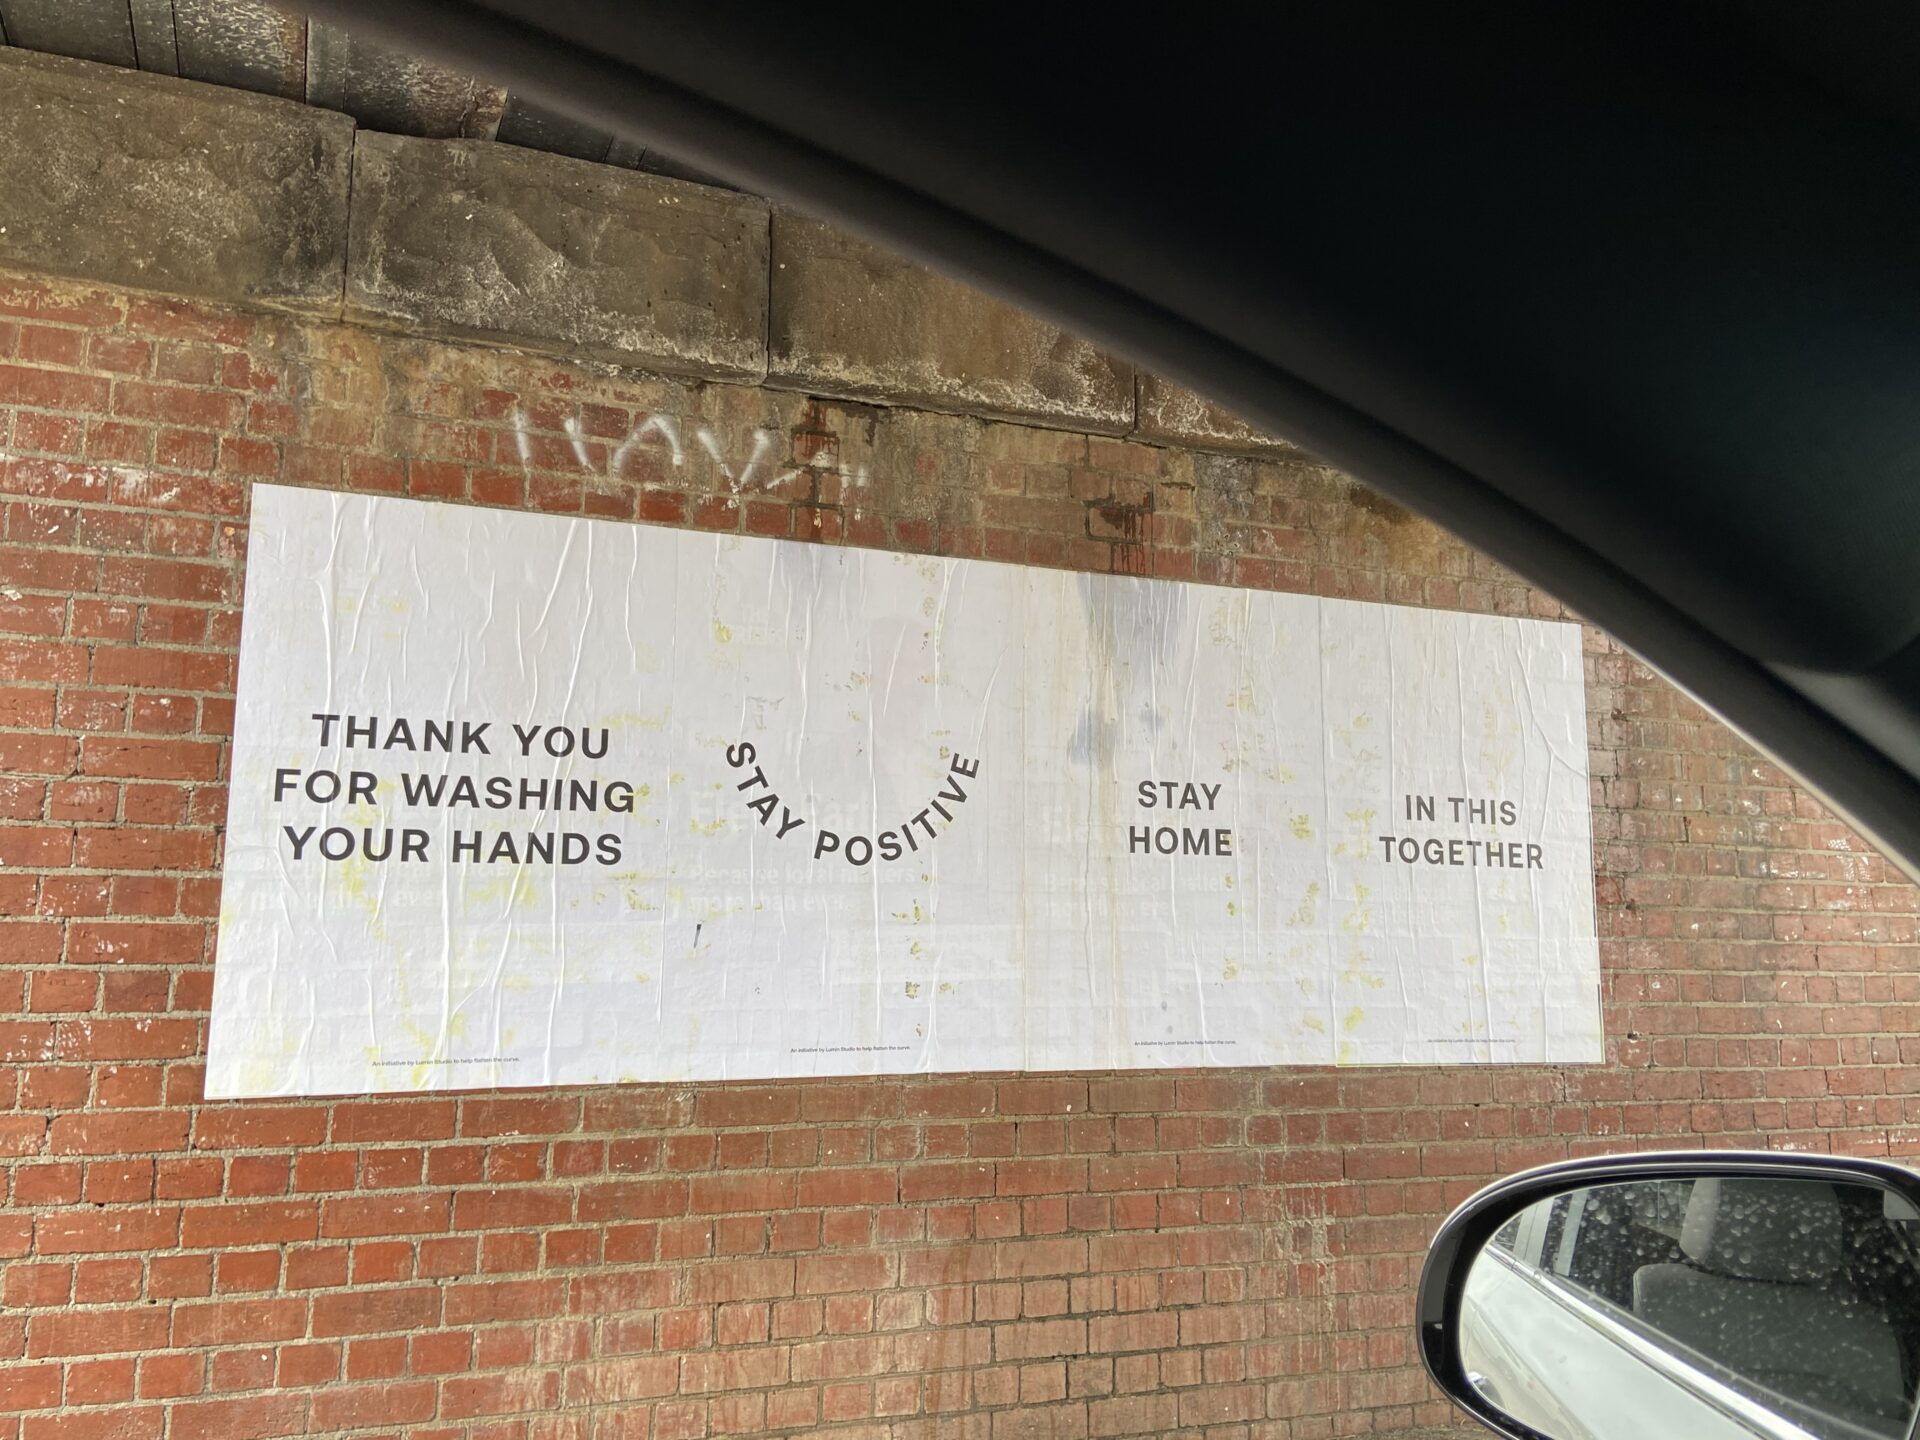 A paste up poster that says 'thank you for washing your hands'